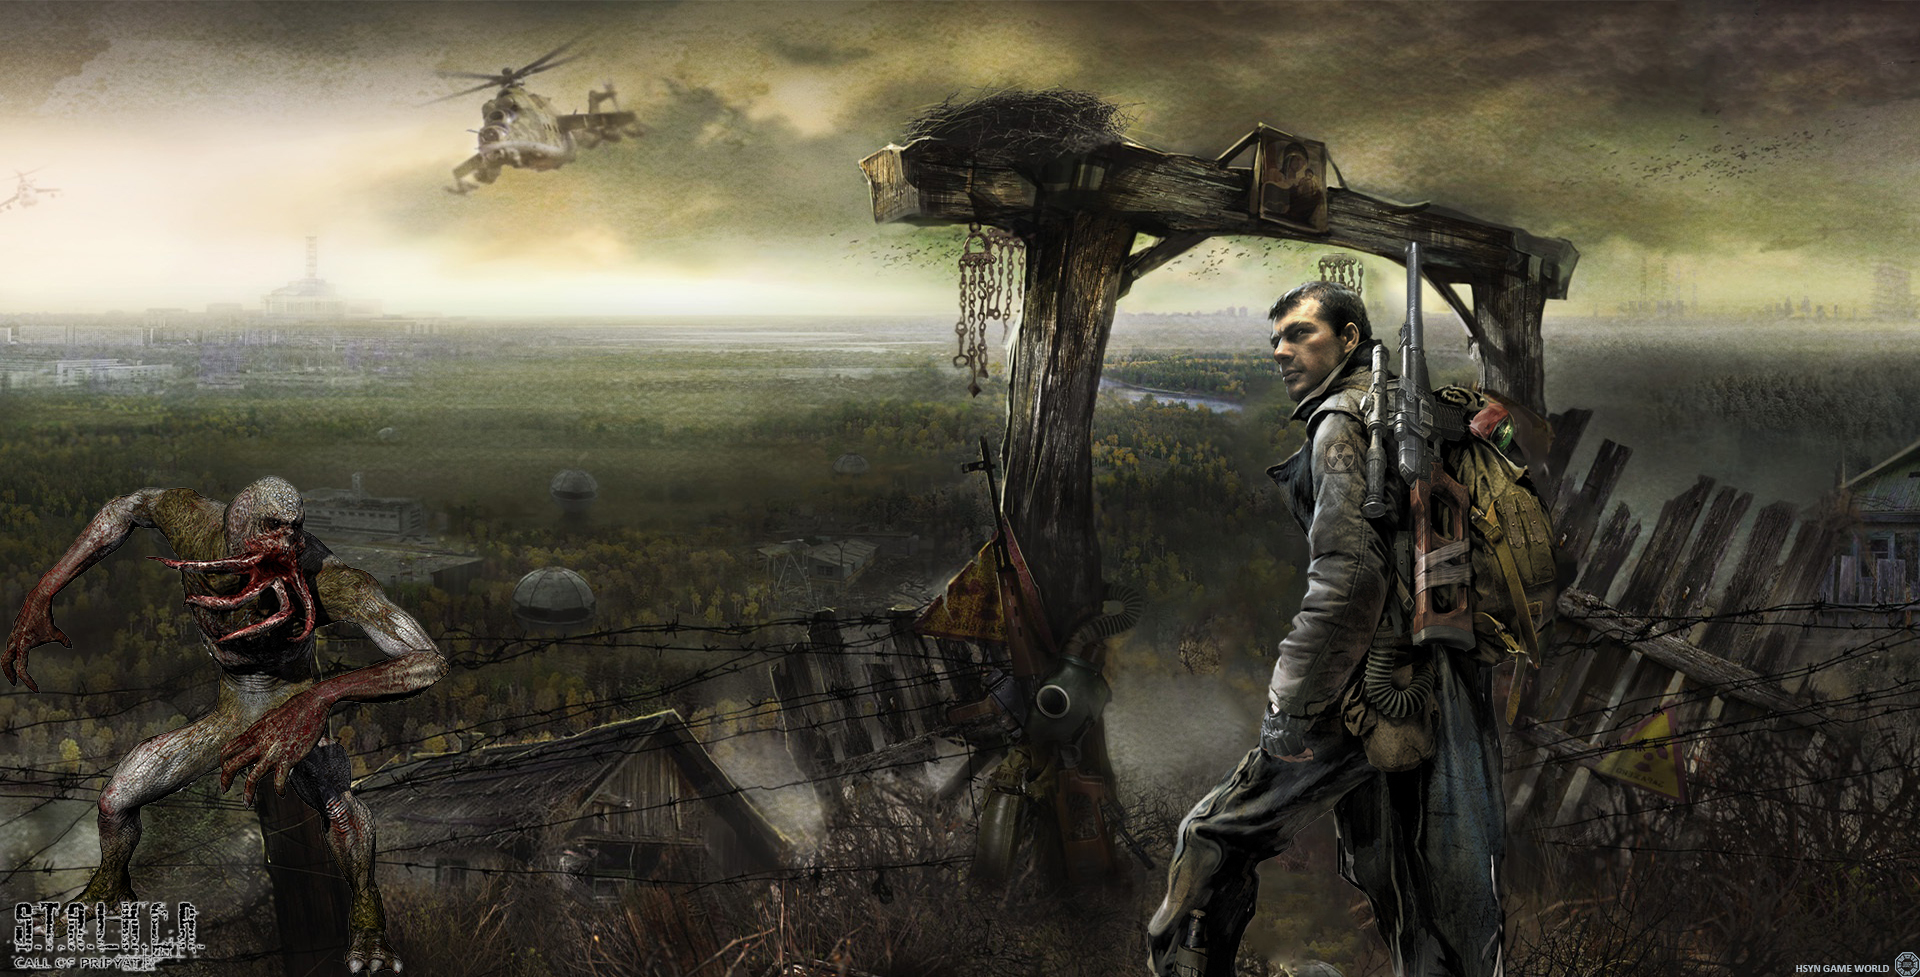 Nice Images Collection: HSYN GAME WORLD Desktop Wallpapers